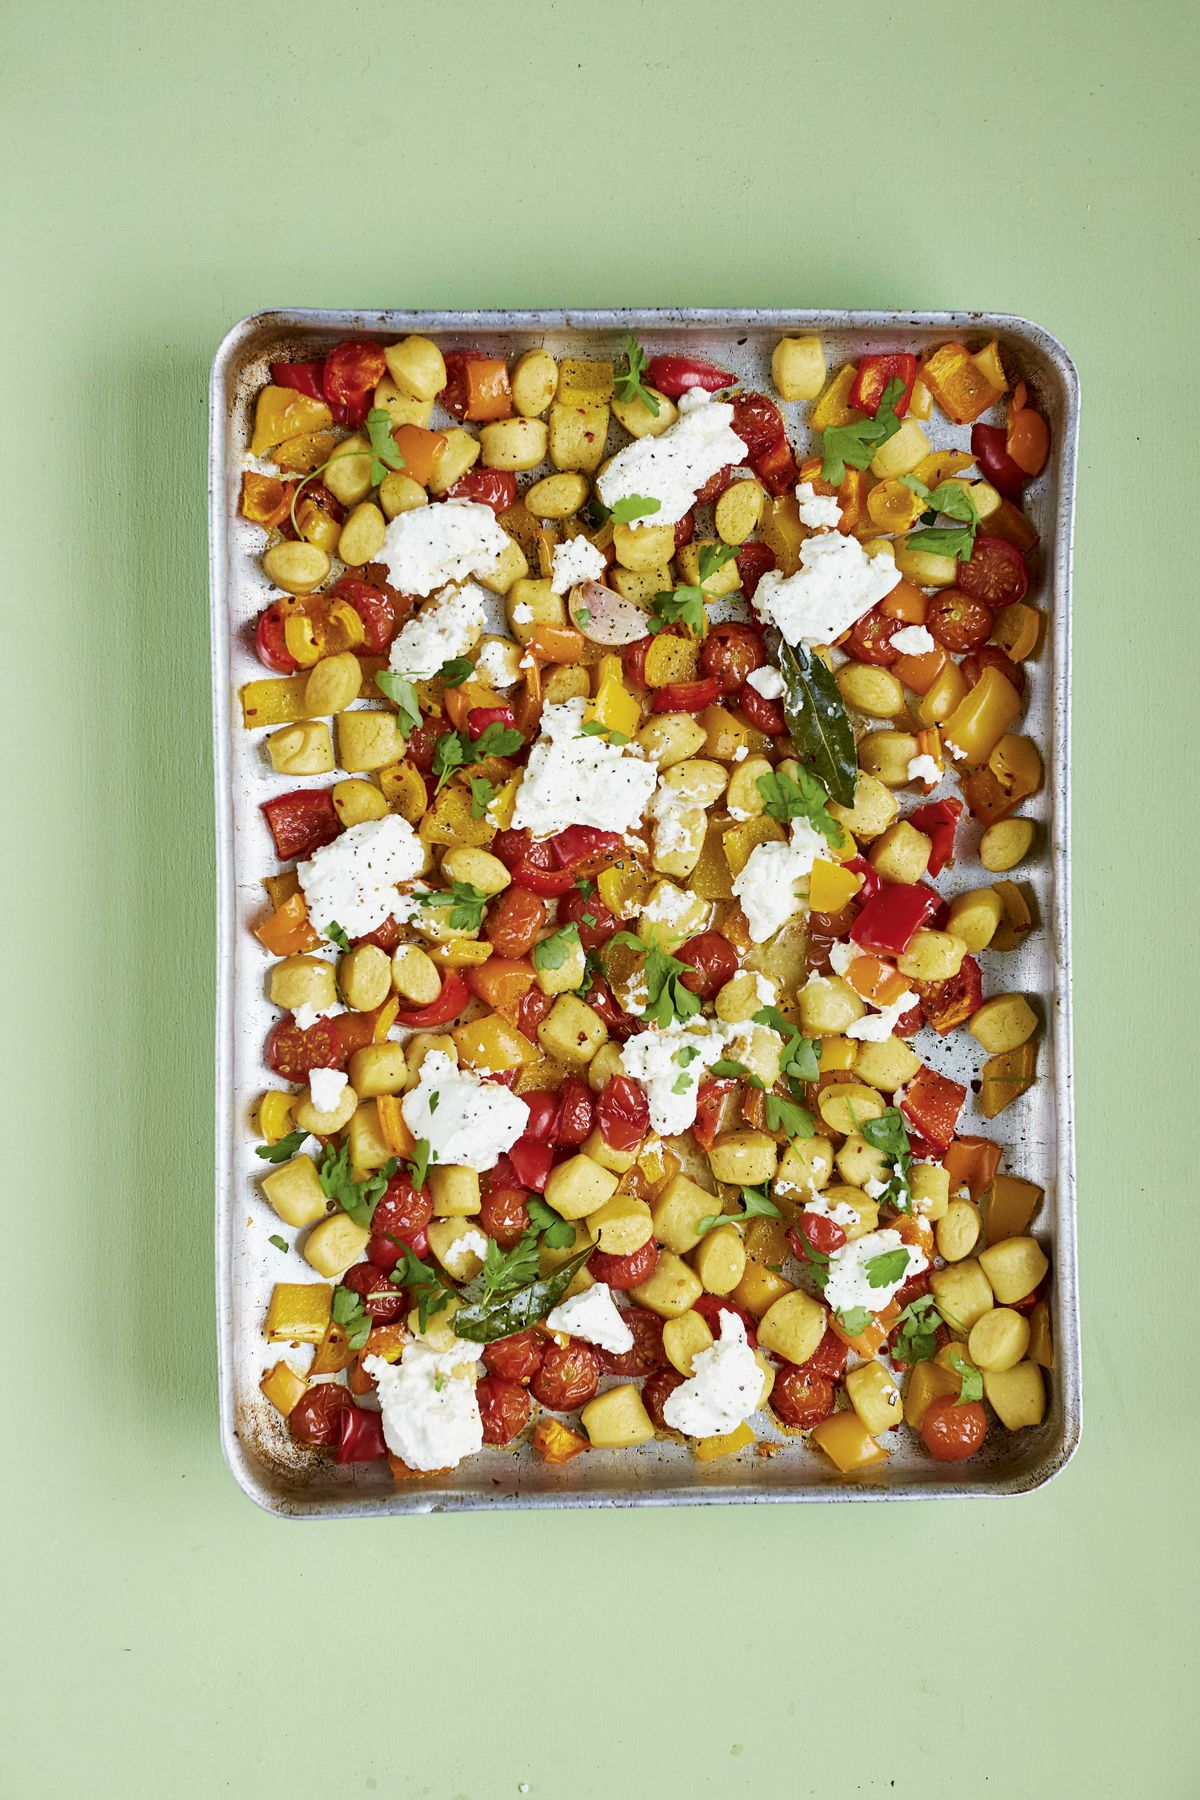 Crispy Gnocchi with Roasted Peppers, Chilli, Rosemary and Ricotta